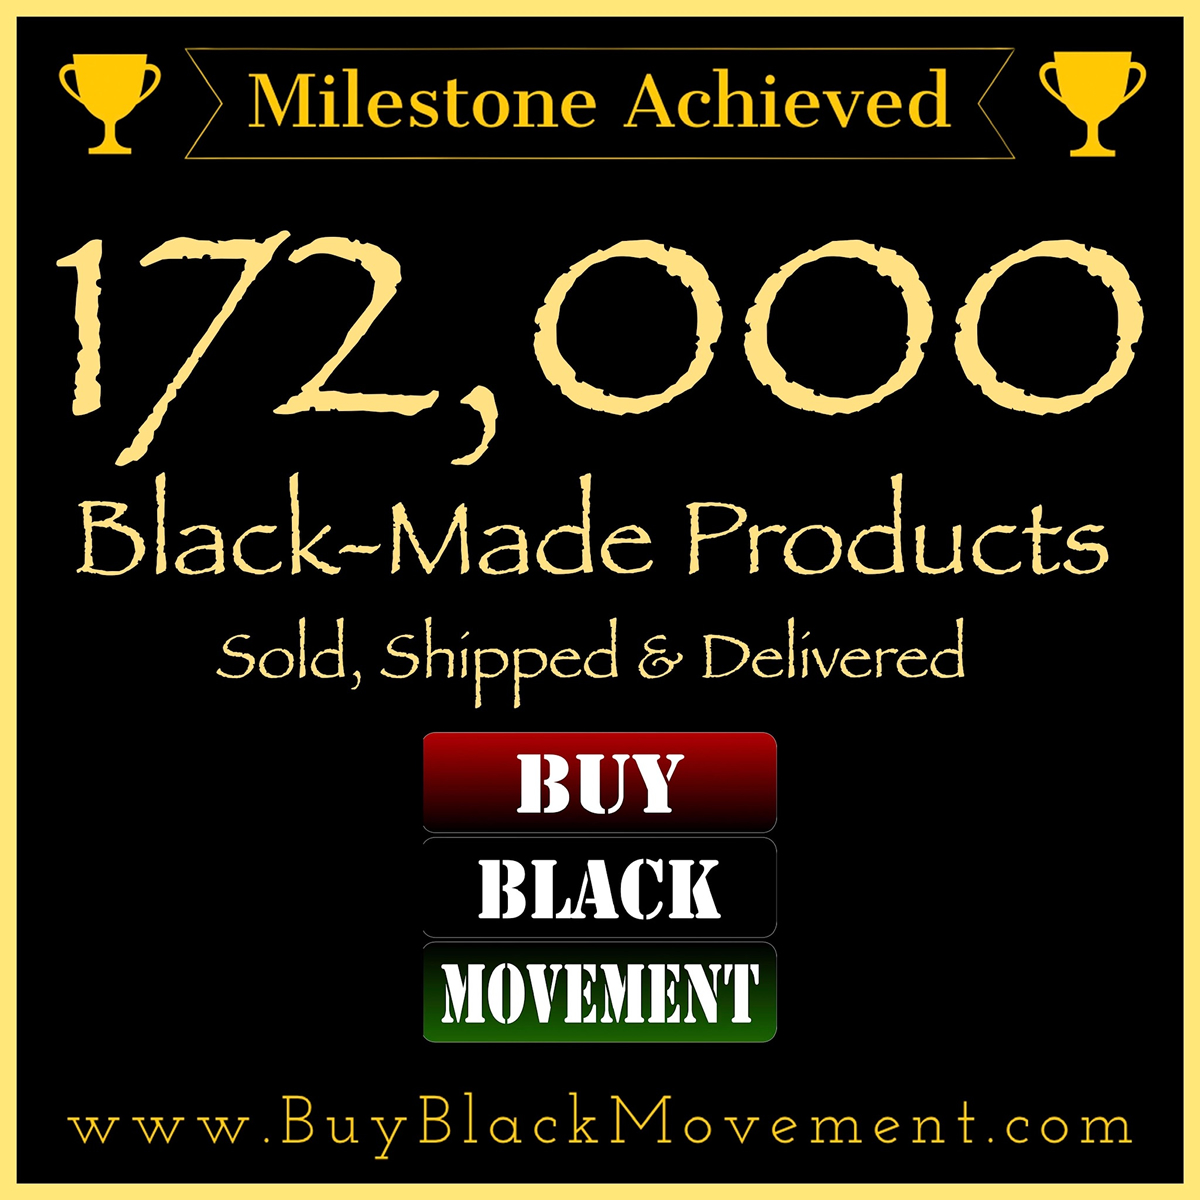 172,000 Products Sold